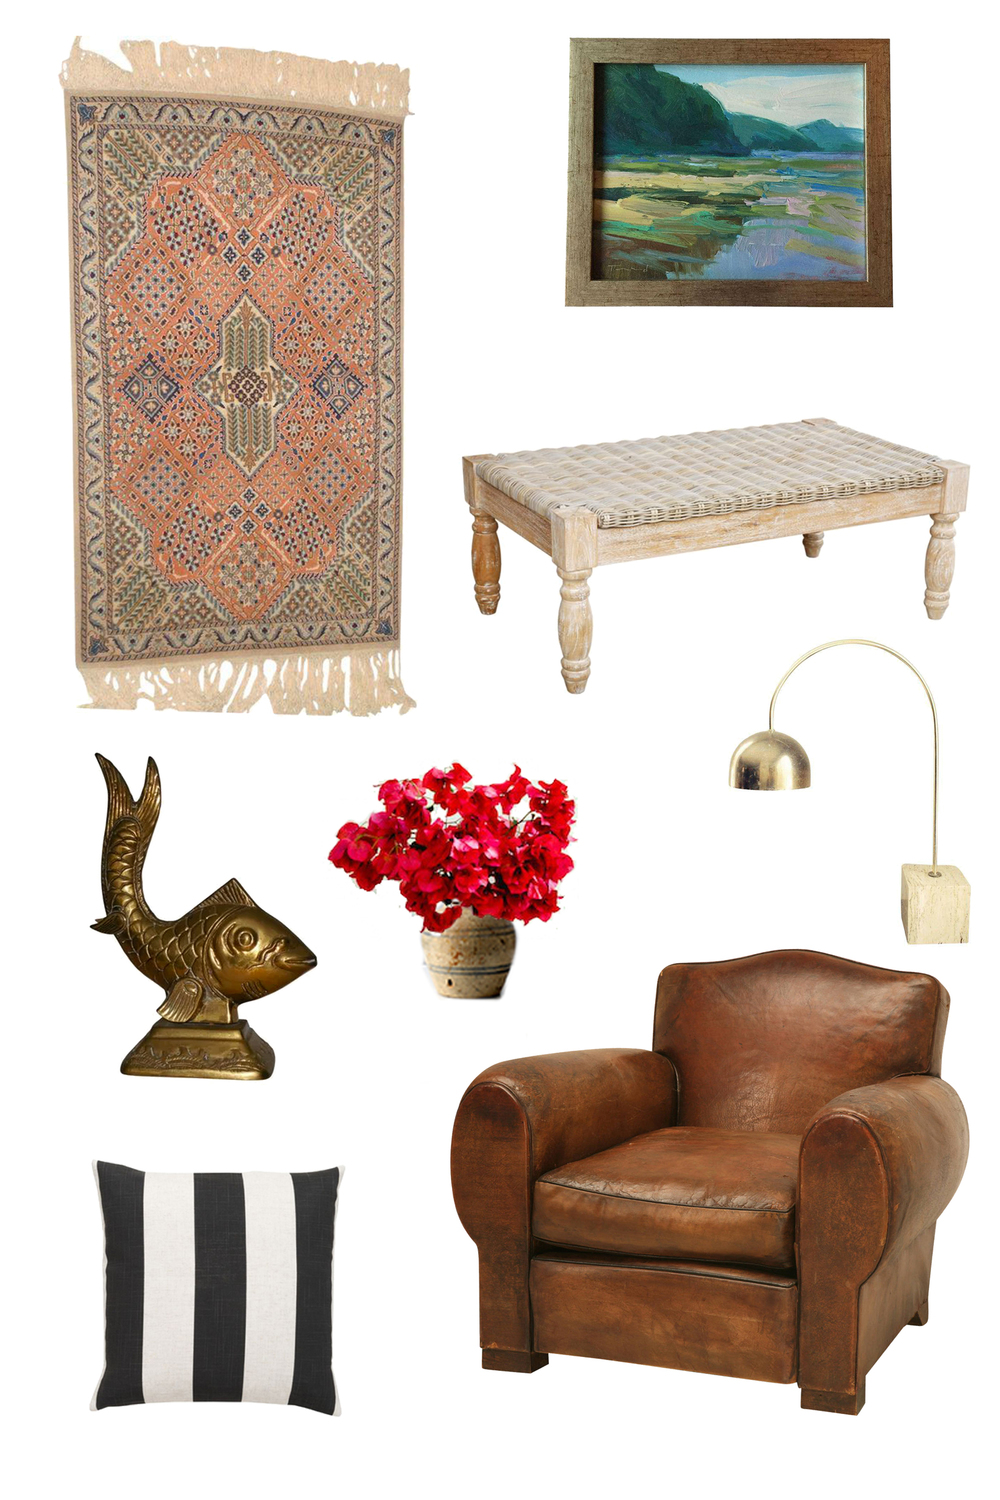 Rug  //  Painting  //  Coffee Table  //  Lamp  //  Chair  //  Pillow  //  Fish